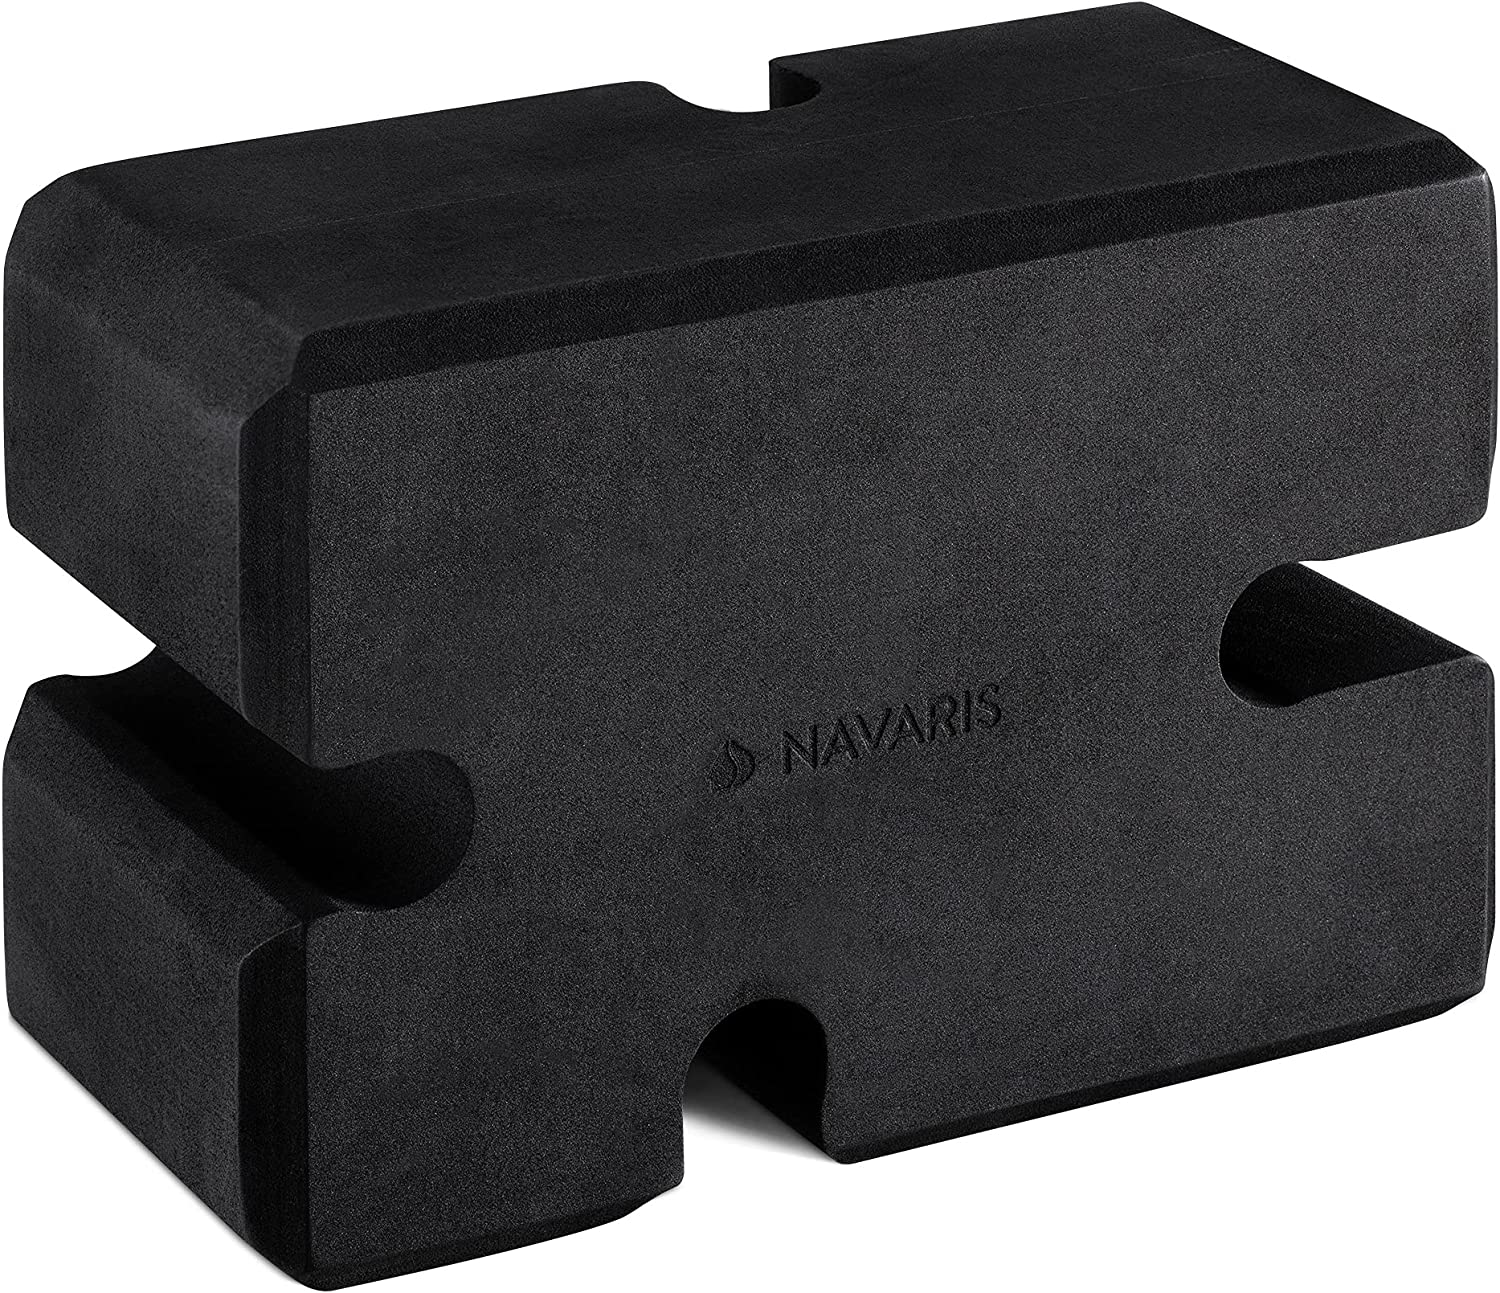 Navaris Bench Block for Weightlifting - Bench Press Block for Lifting Weights - Replaces Boards and Yoga Blocks - Train and Do Board Presses Alone: Sports & Outdoors